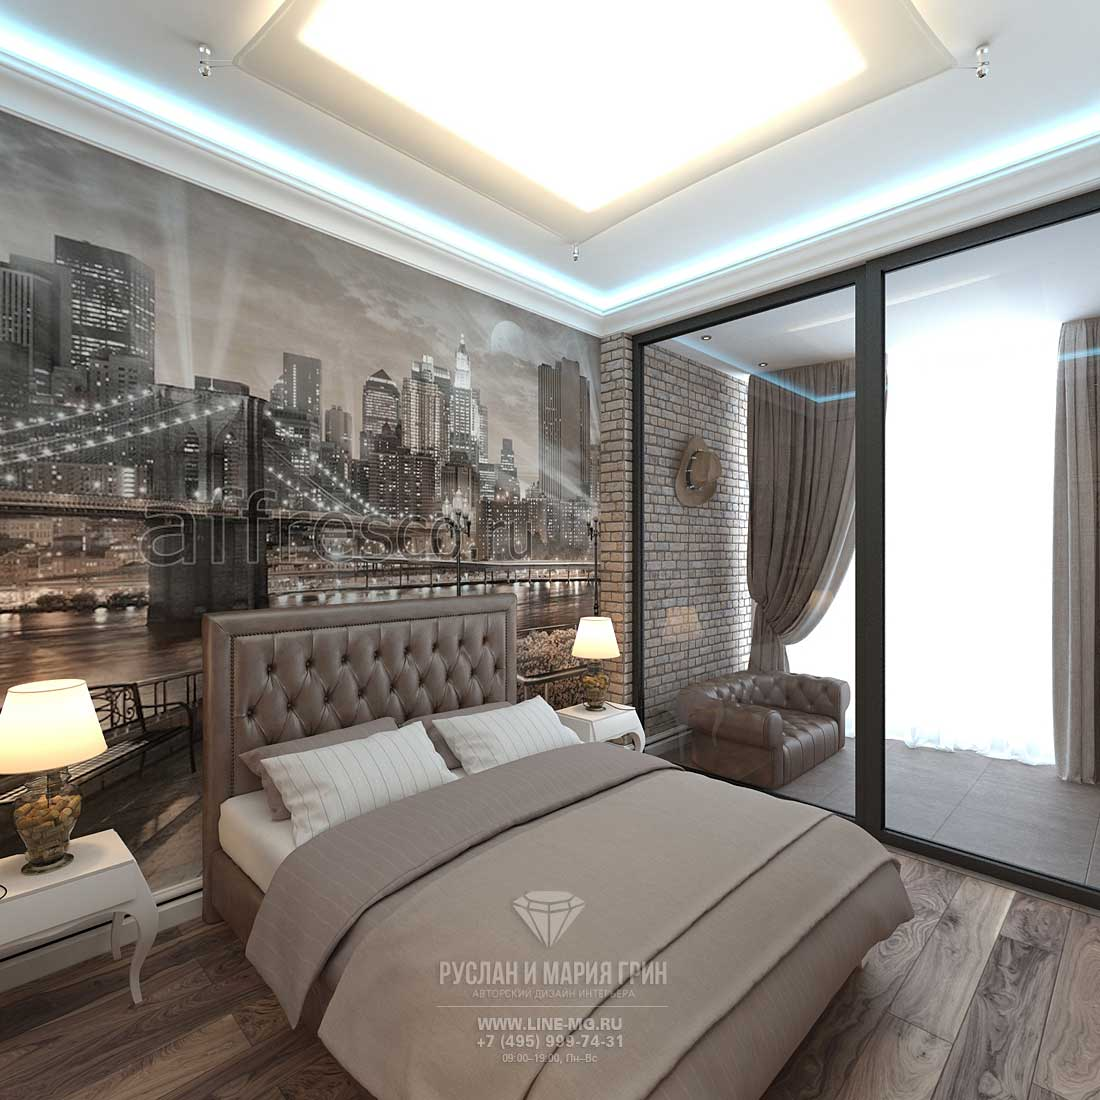 Room interior design for a 10-year-old boy. Apartment in Skolkovo Park